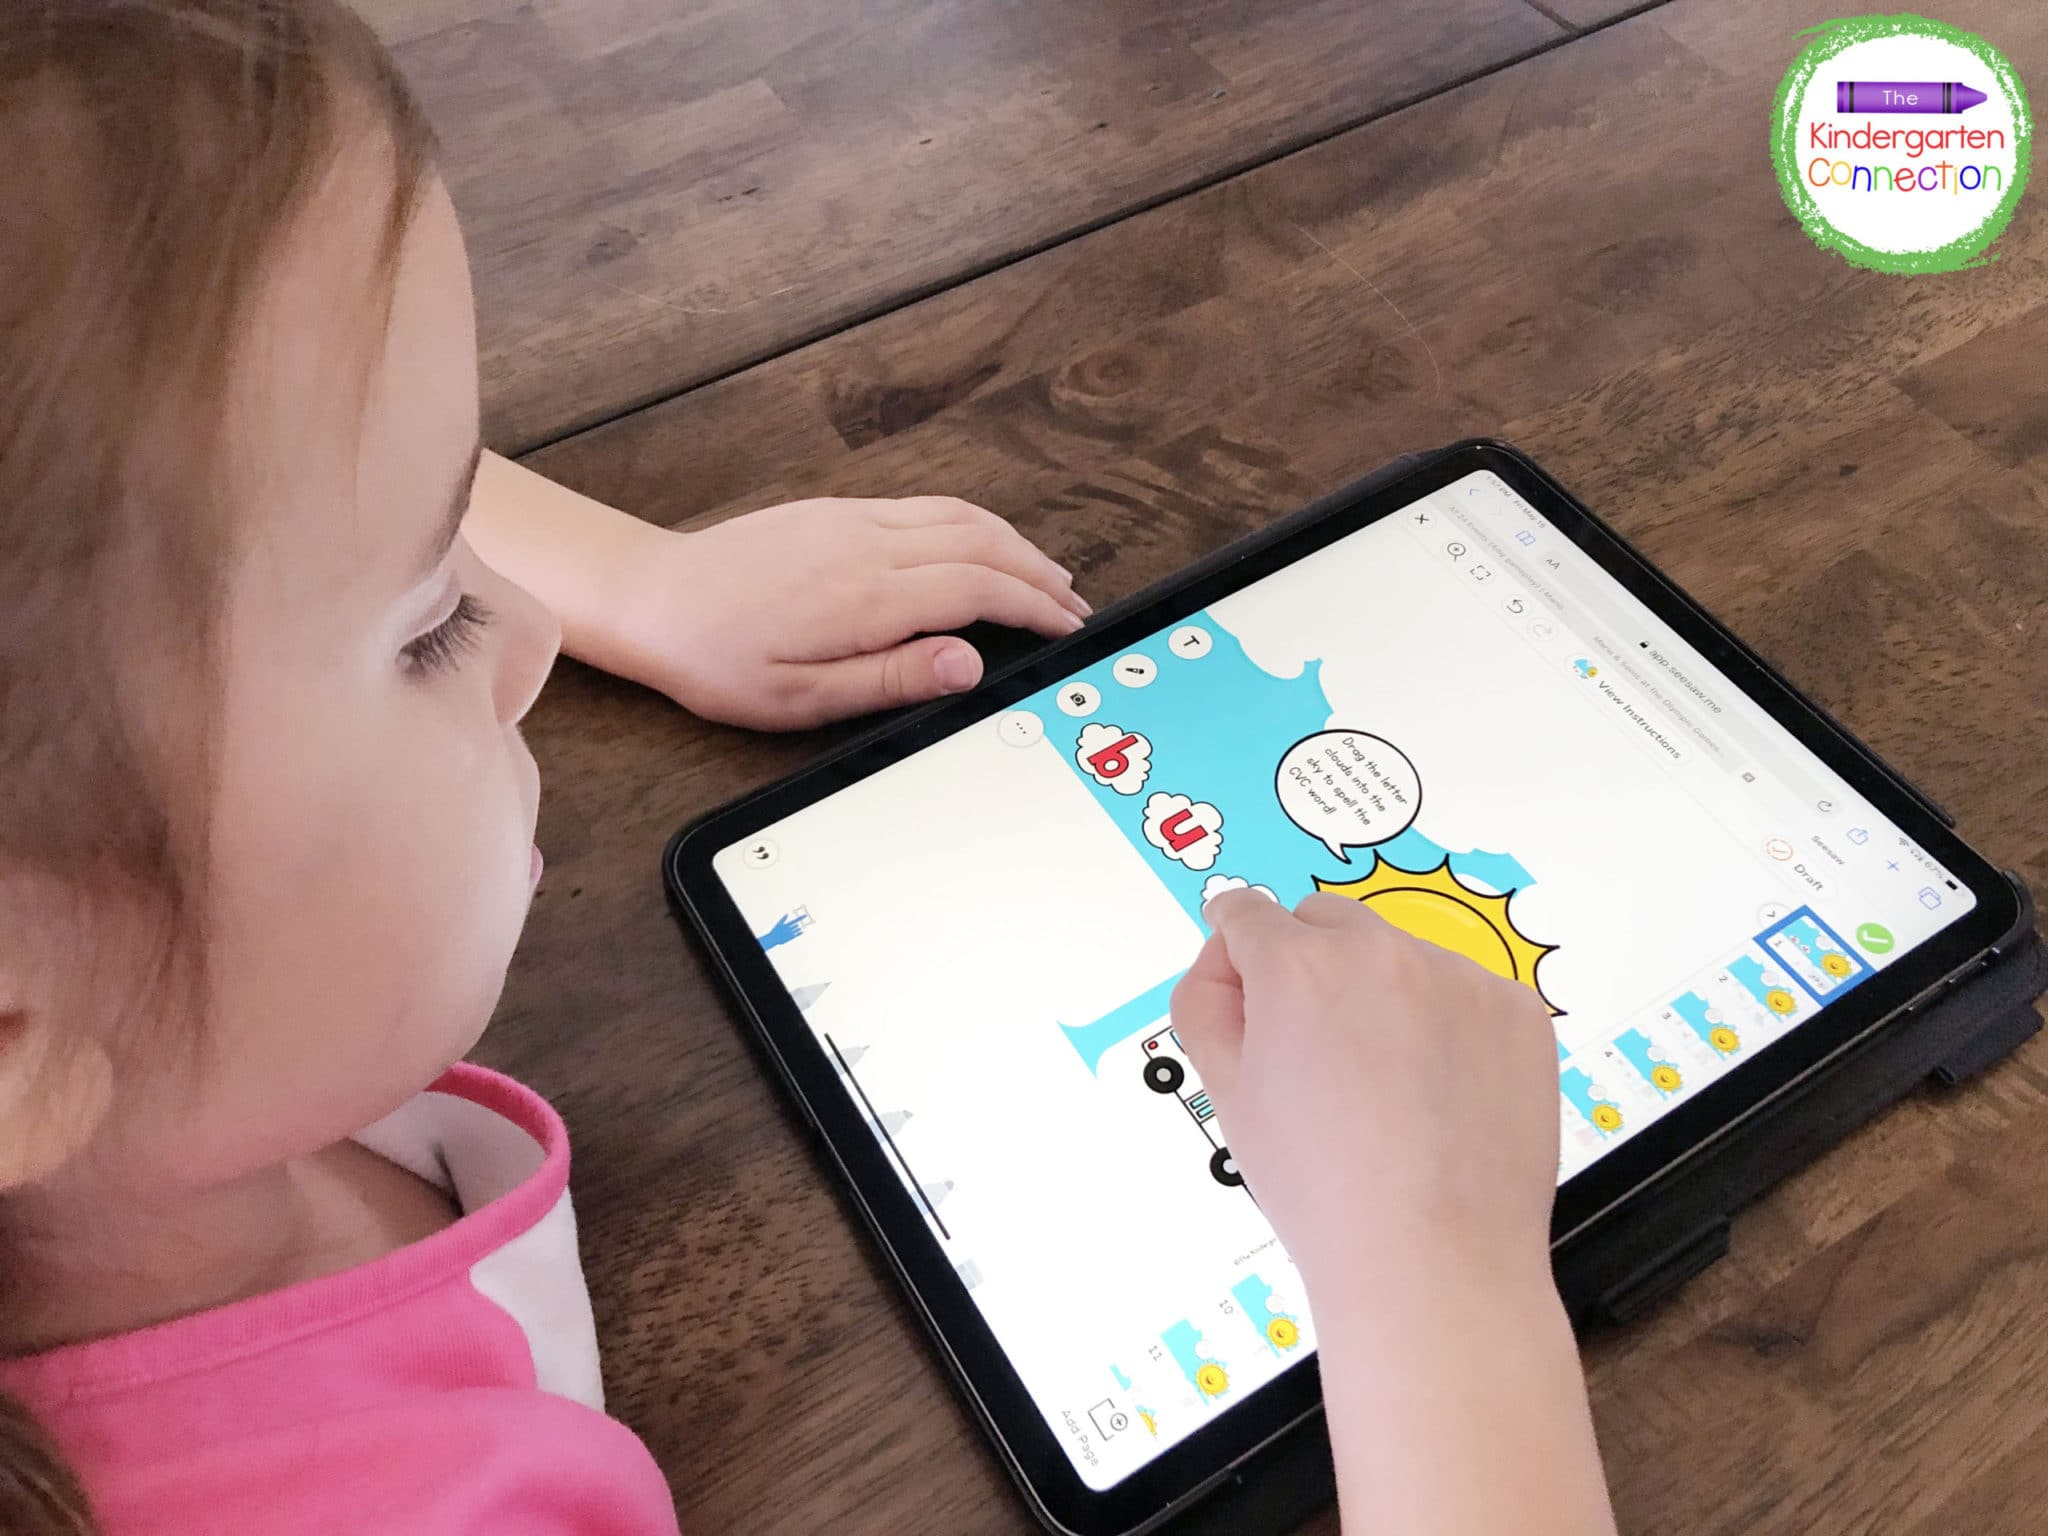 Kids can use a tablet independently to practice important skills in a way they will truly enjoy.